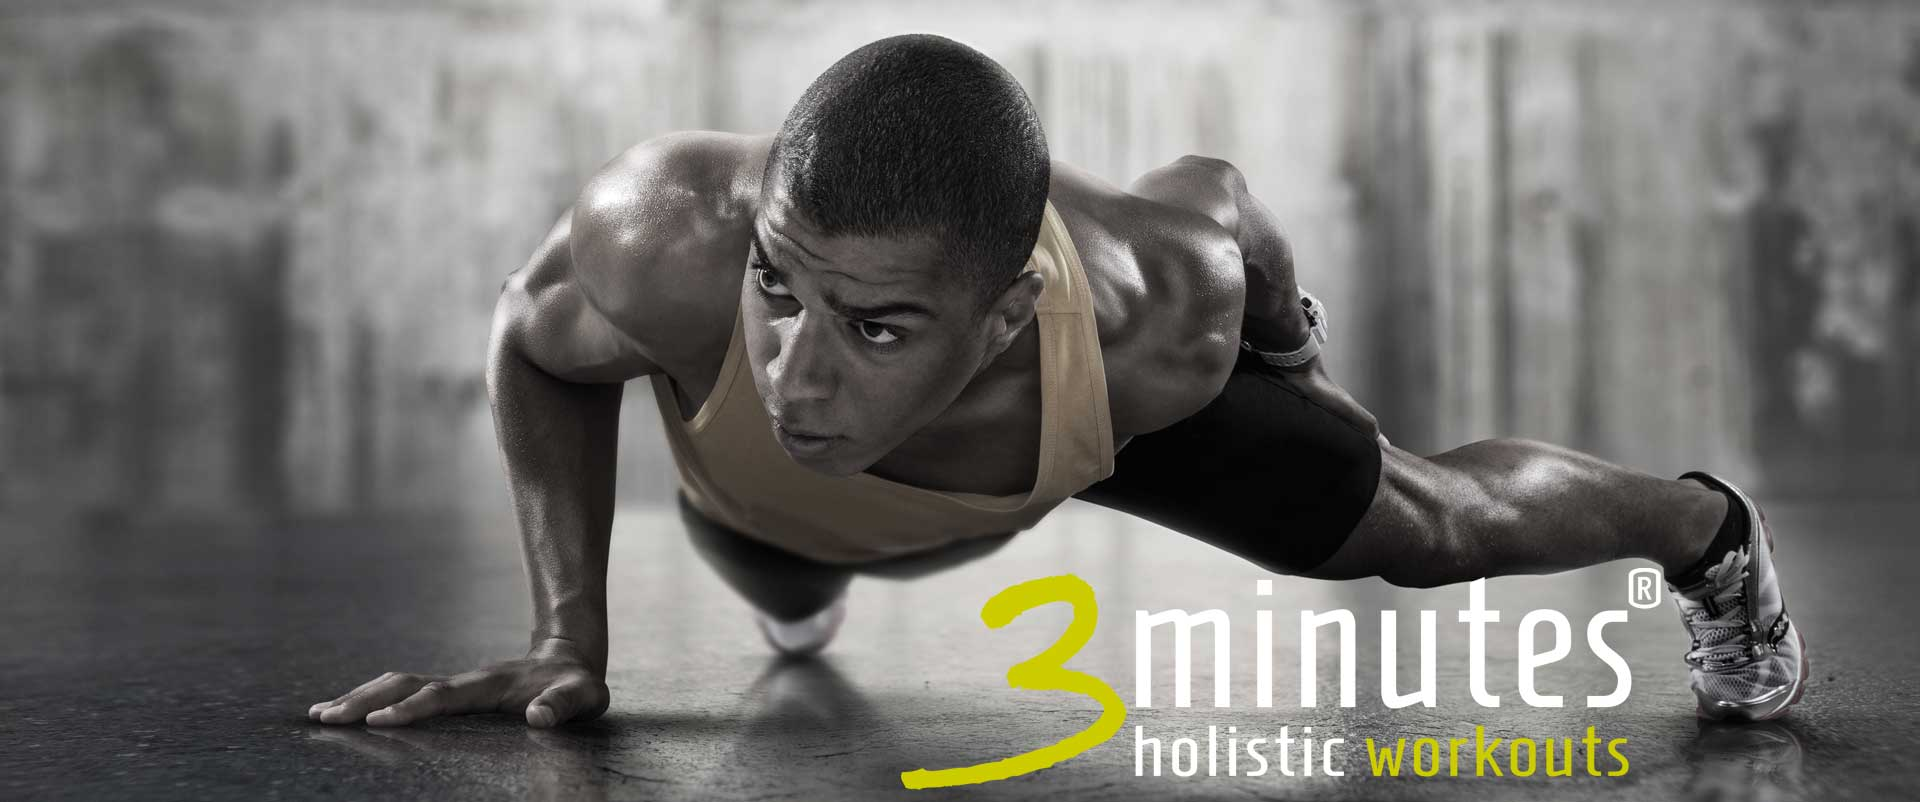 threeminutes – holistic workouts